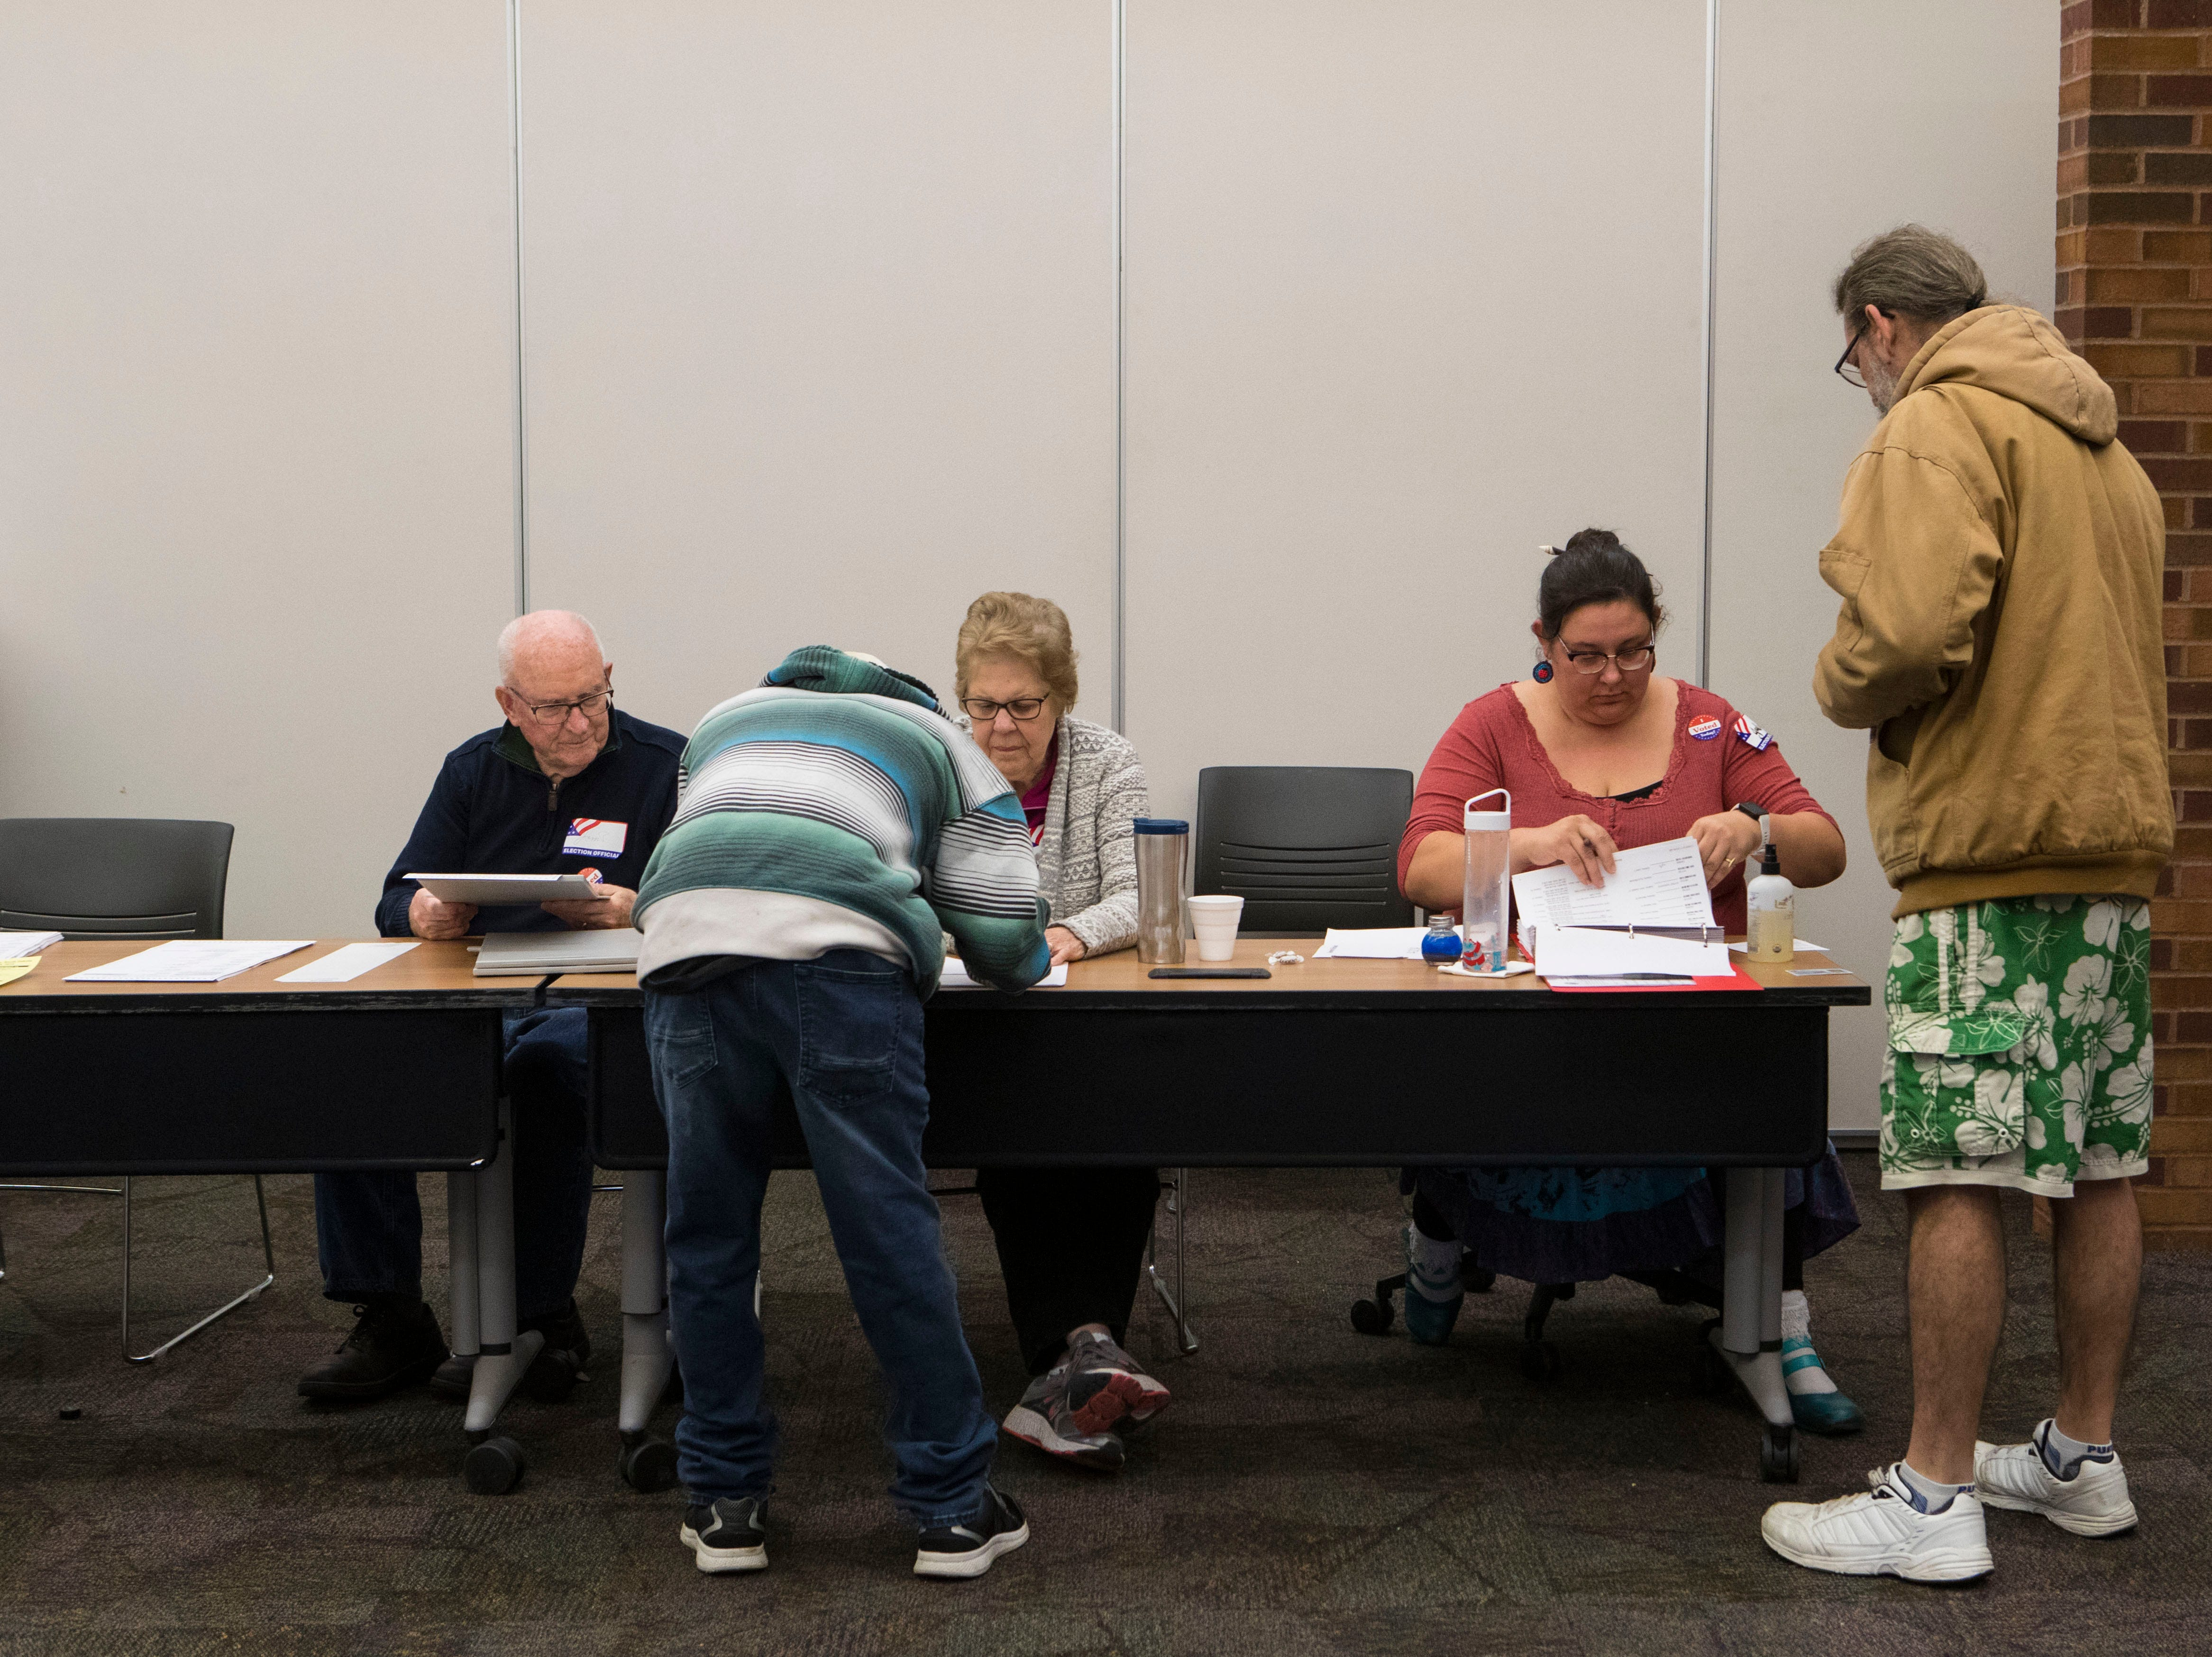 Sioux Falls residents get checked in by election officials at the Downtown branch of the Siouxland Libraries in Sioux Falls, S.D., Tuesday, Nov. 6, 2018.